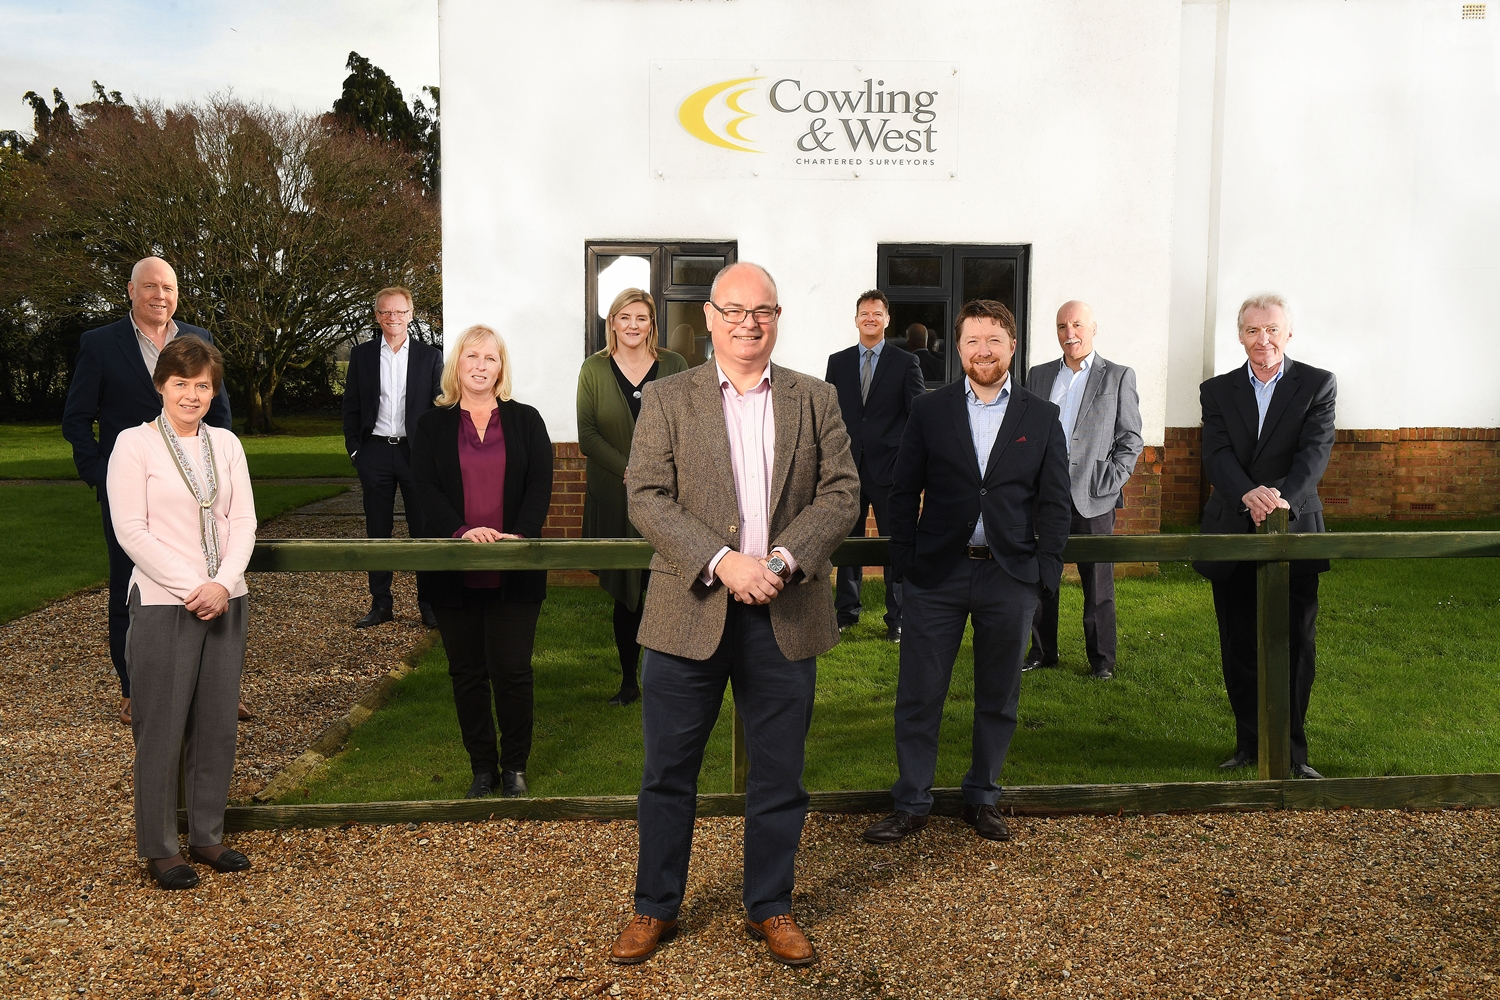 <p><strong>Vail Williams continues growth trail with south coast merger</strong></p>